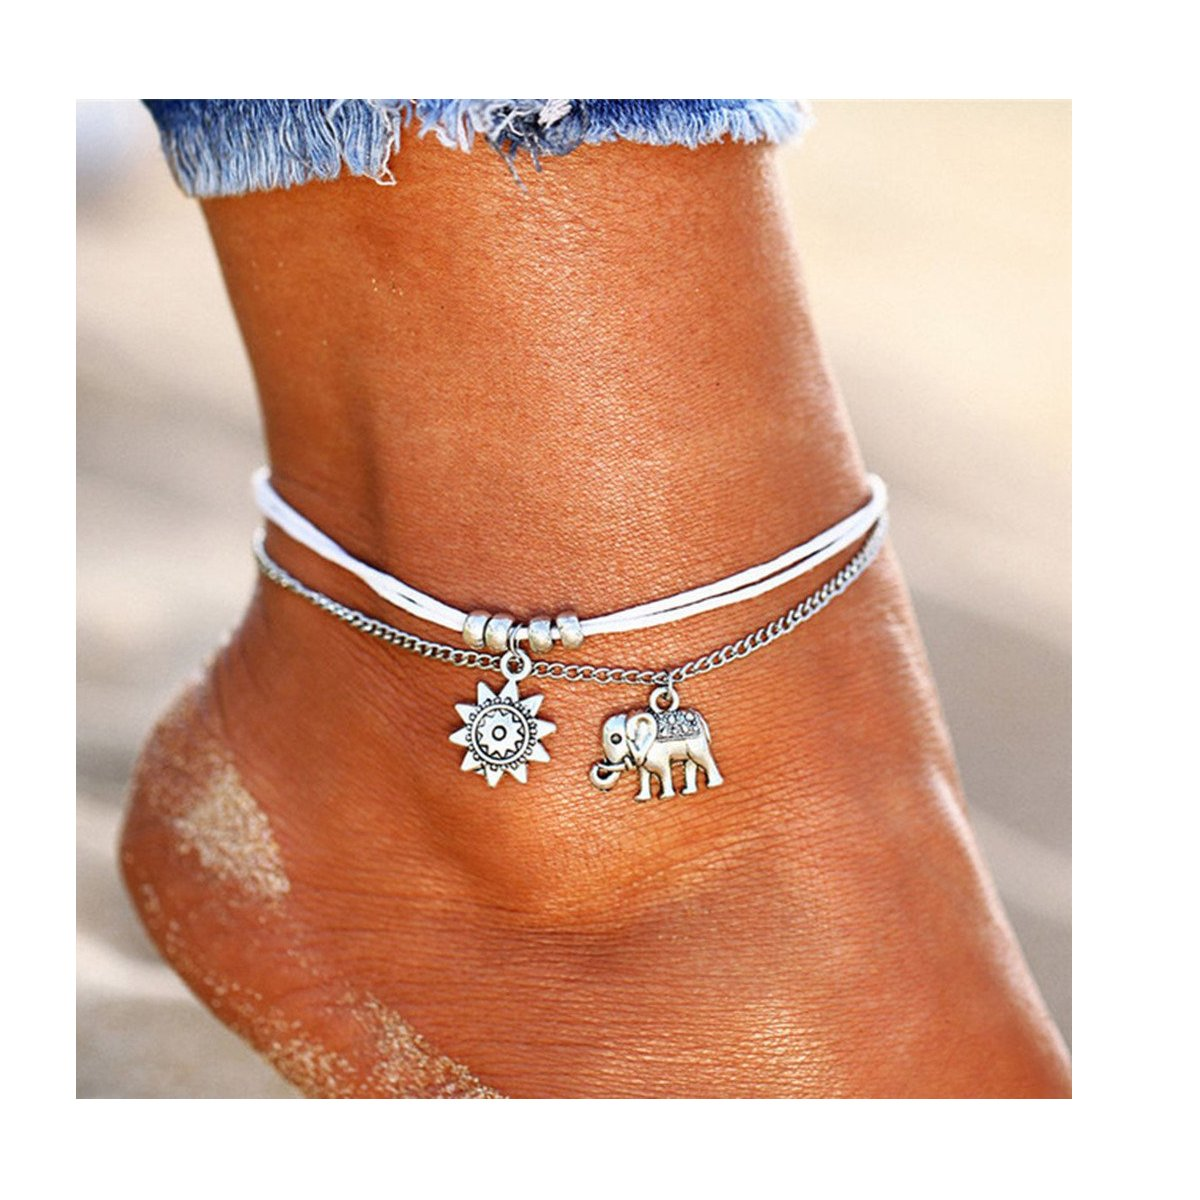 Dolovely 2PCS Boho Beach Layered Rope Anklet Bracelet Handmade Foot Jewelry for Women Teen Girls JL01-US